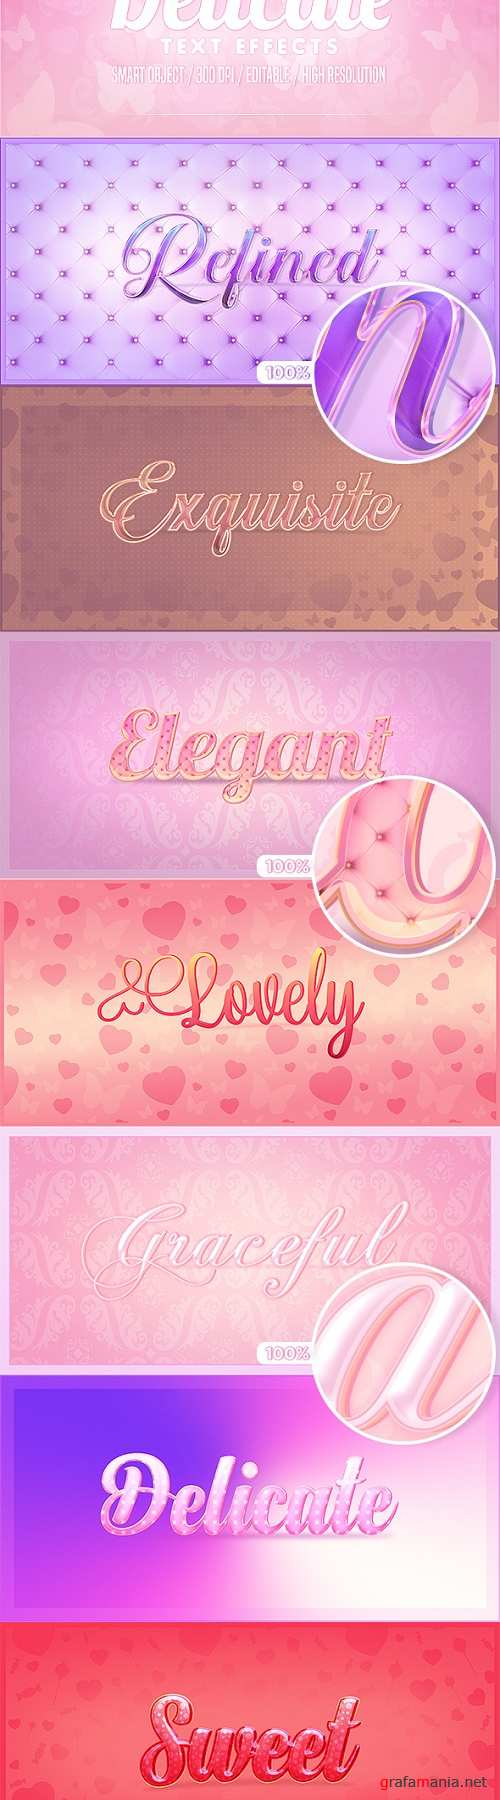 Delicate Photoshop Text Effects 22931110